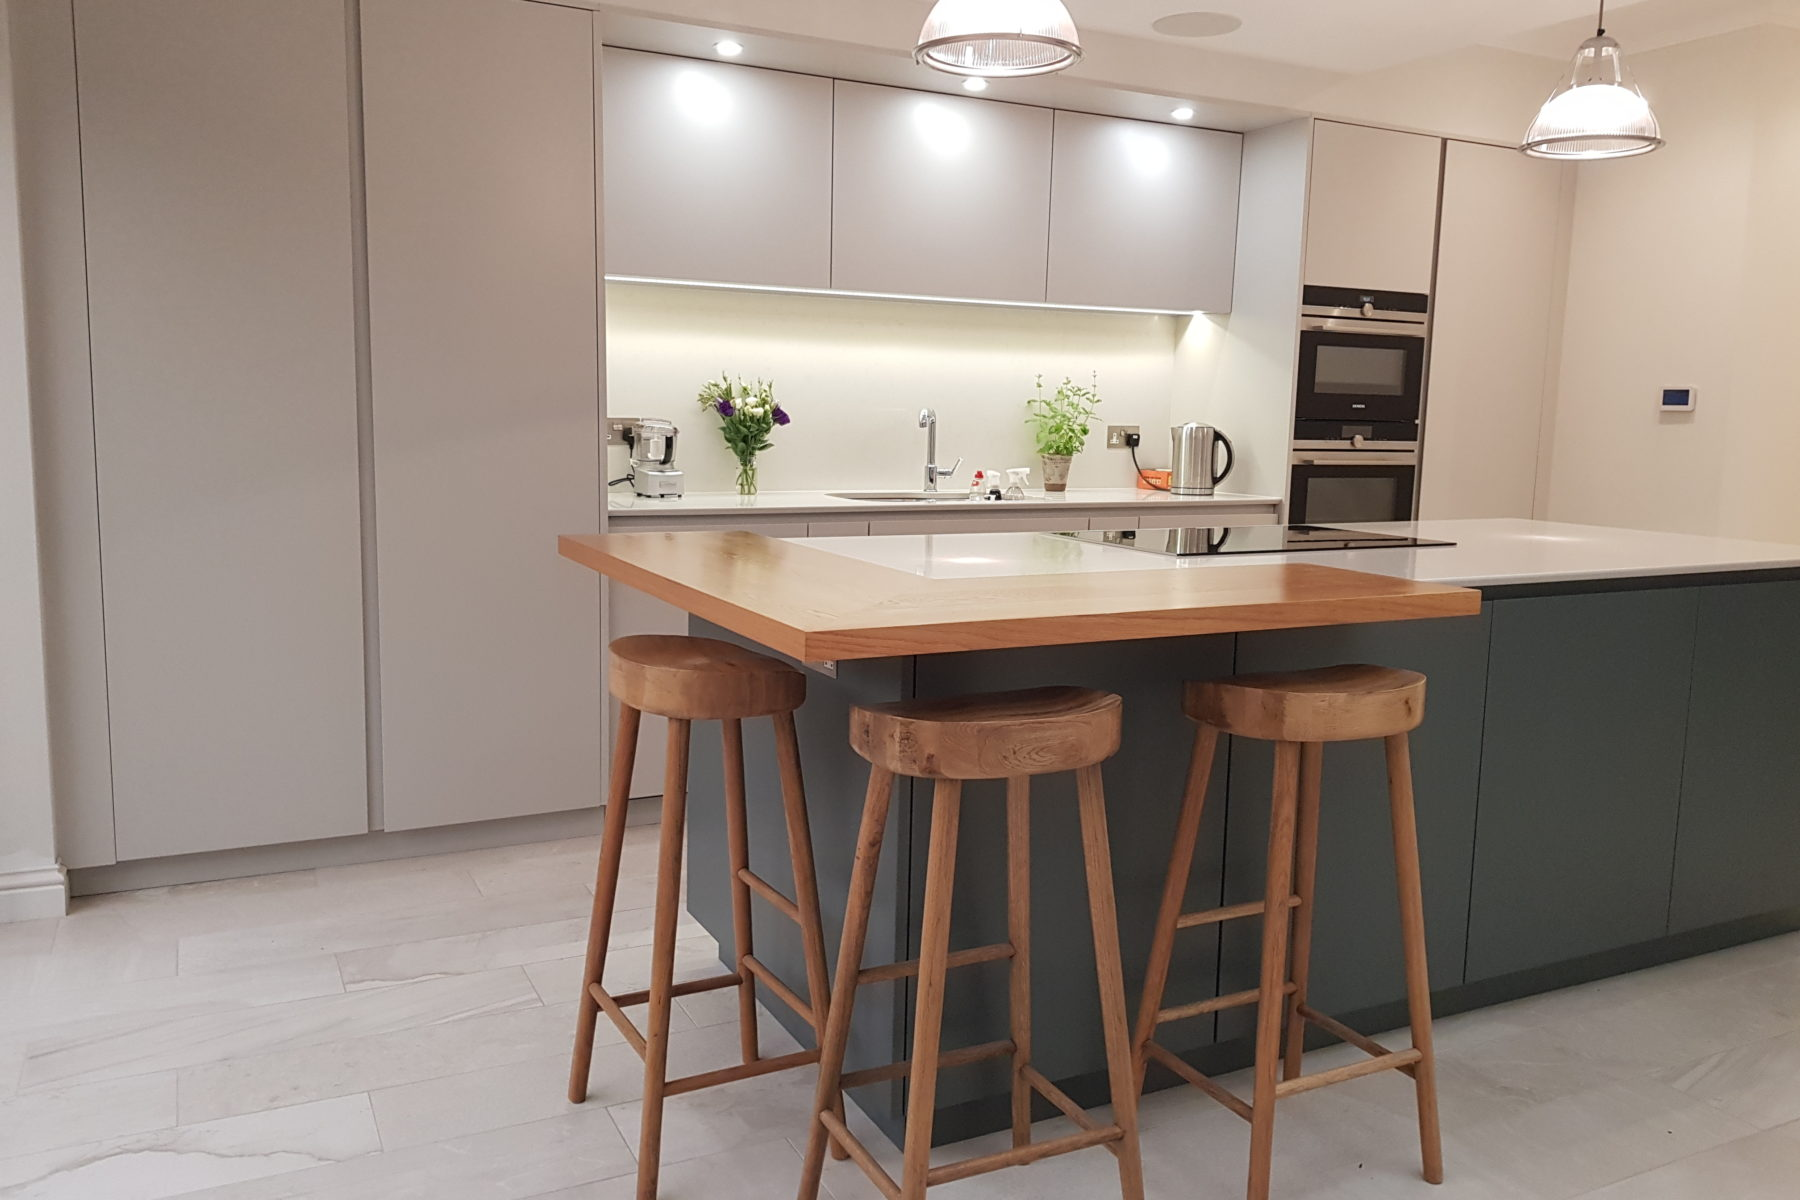 Contemporary slab door kitchen with wooden stools